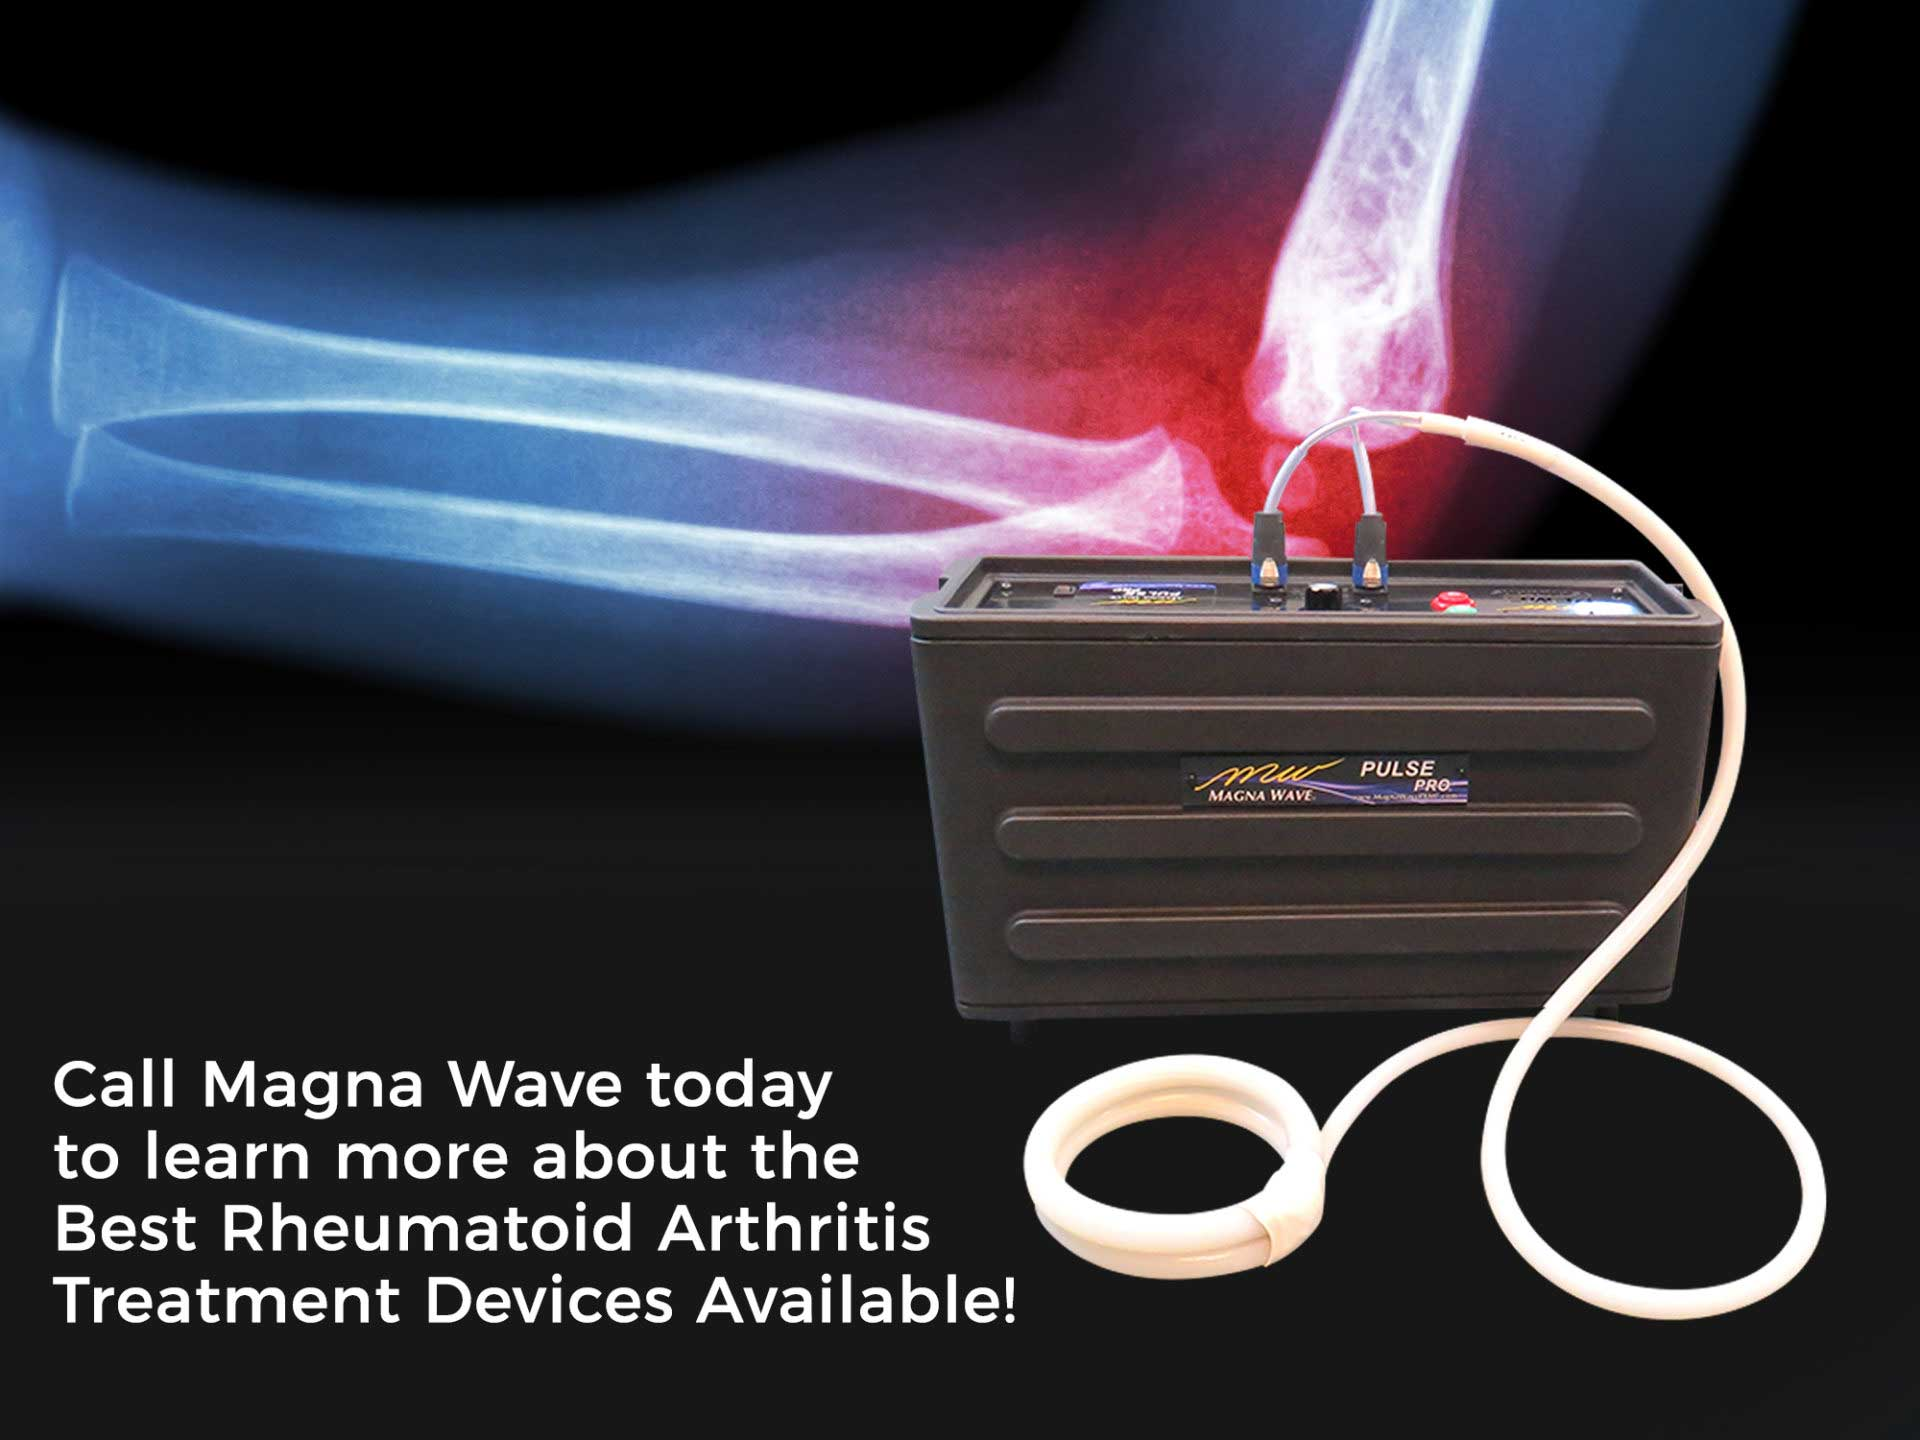 Call Magna Wave today to learn more about the Best Rheumatoid Arthritis Treatment Devices Available!